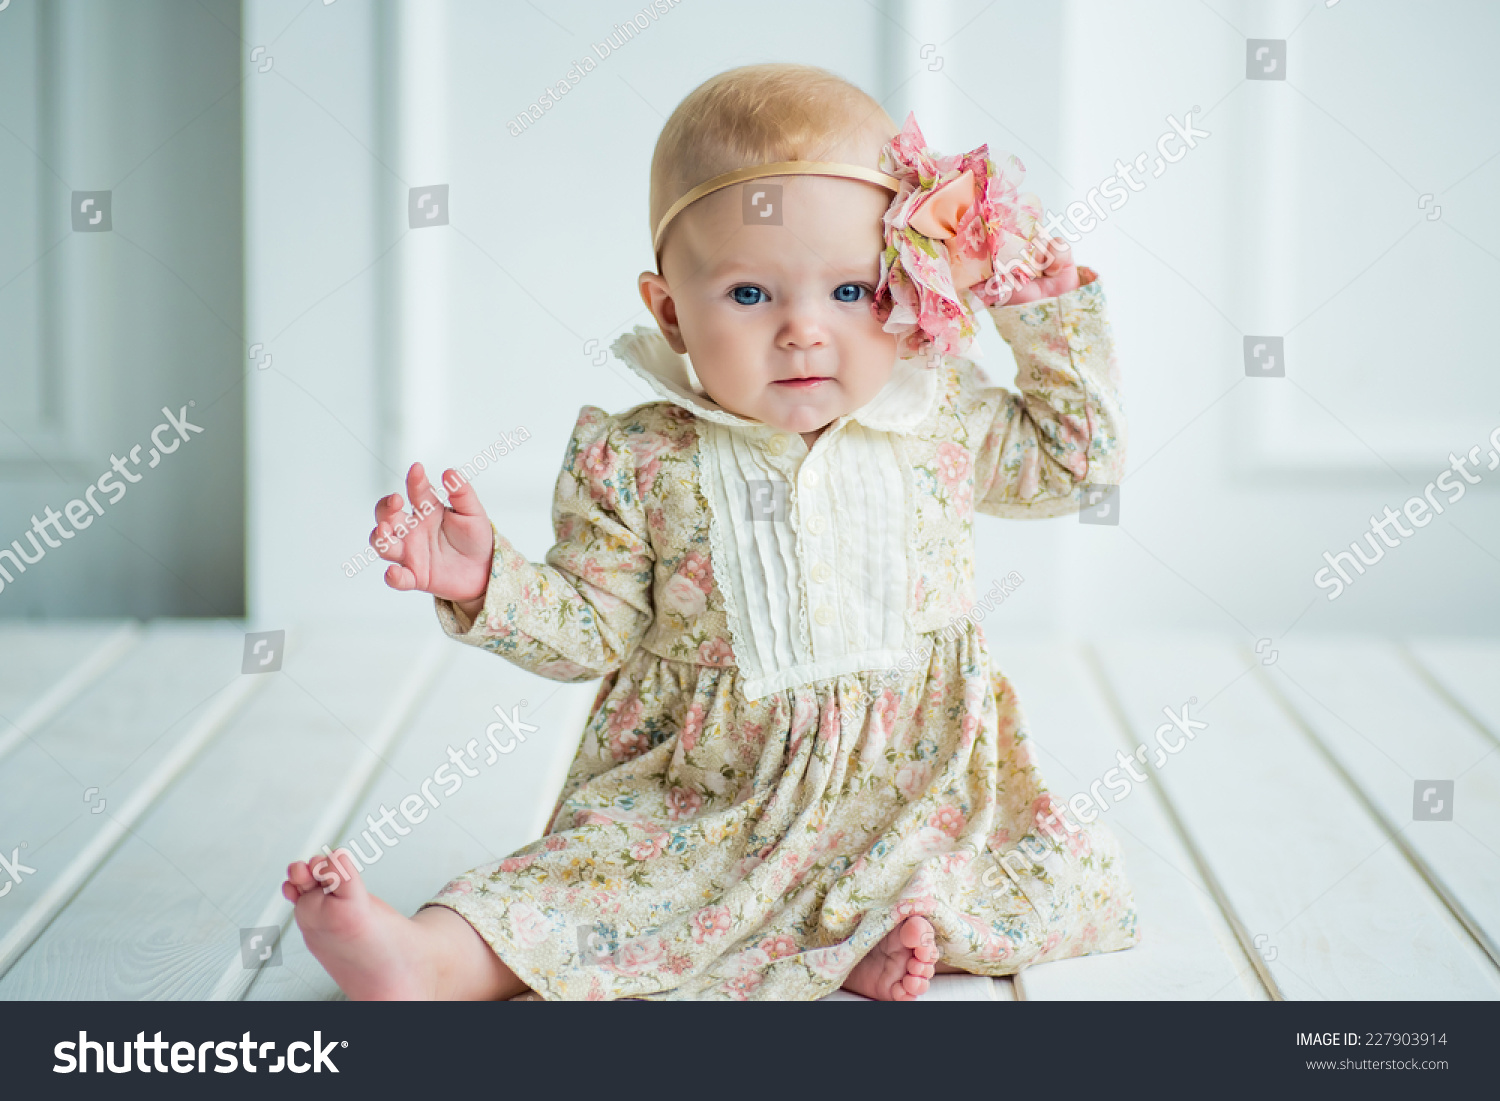 small cute baby girl adorable flower stock photo (royalty free